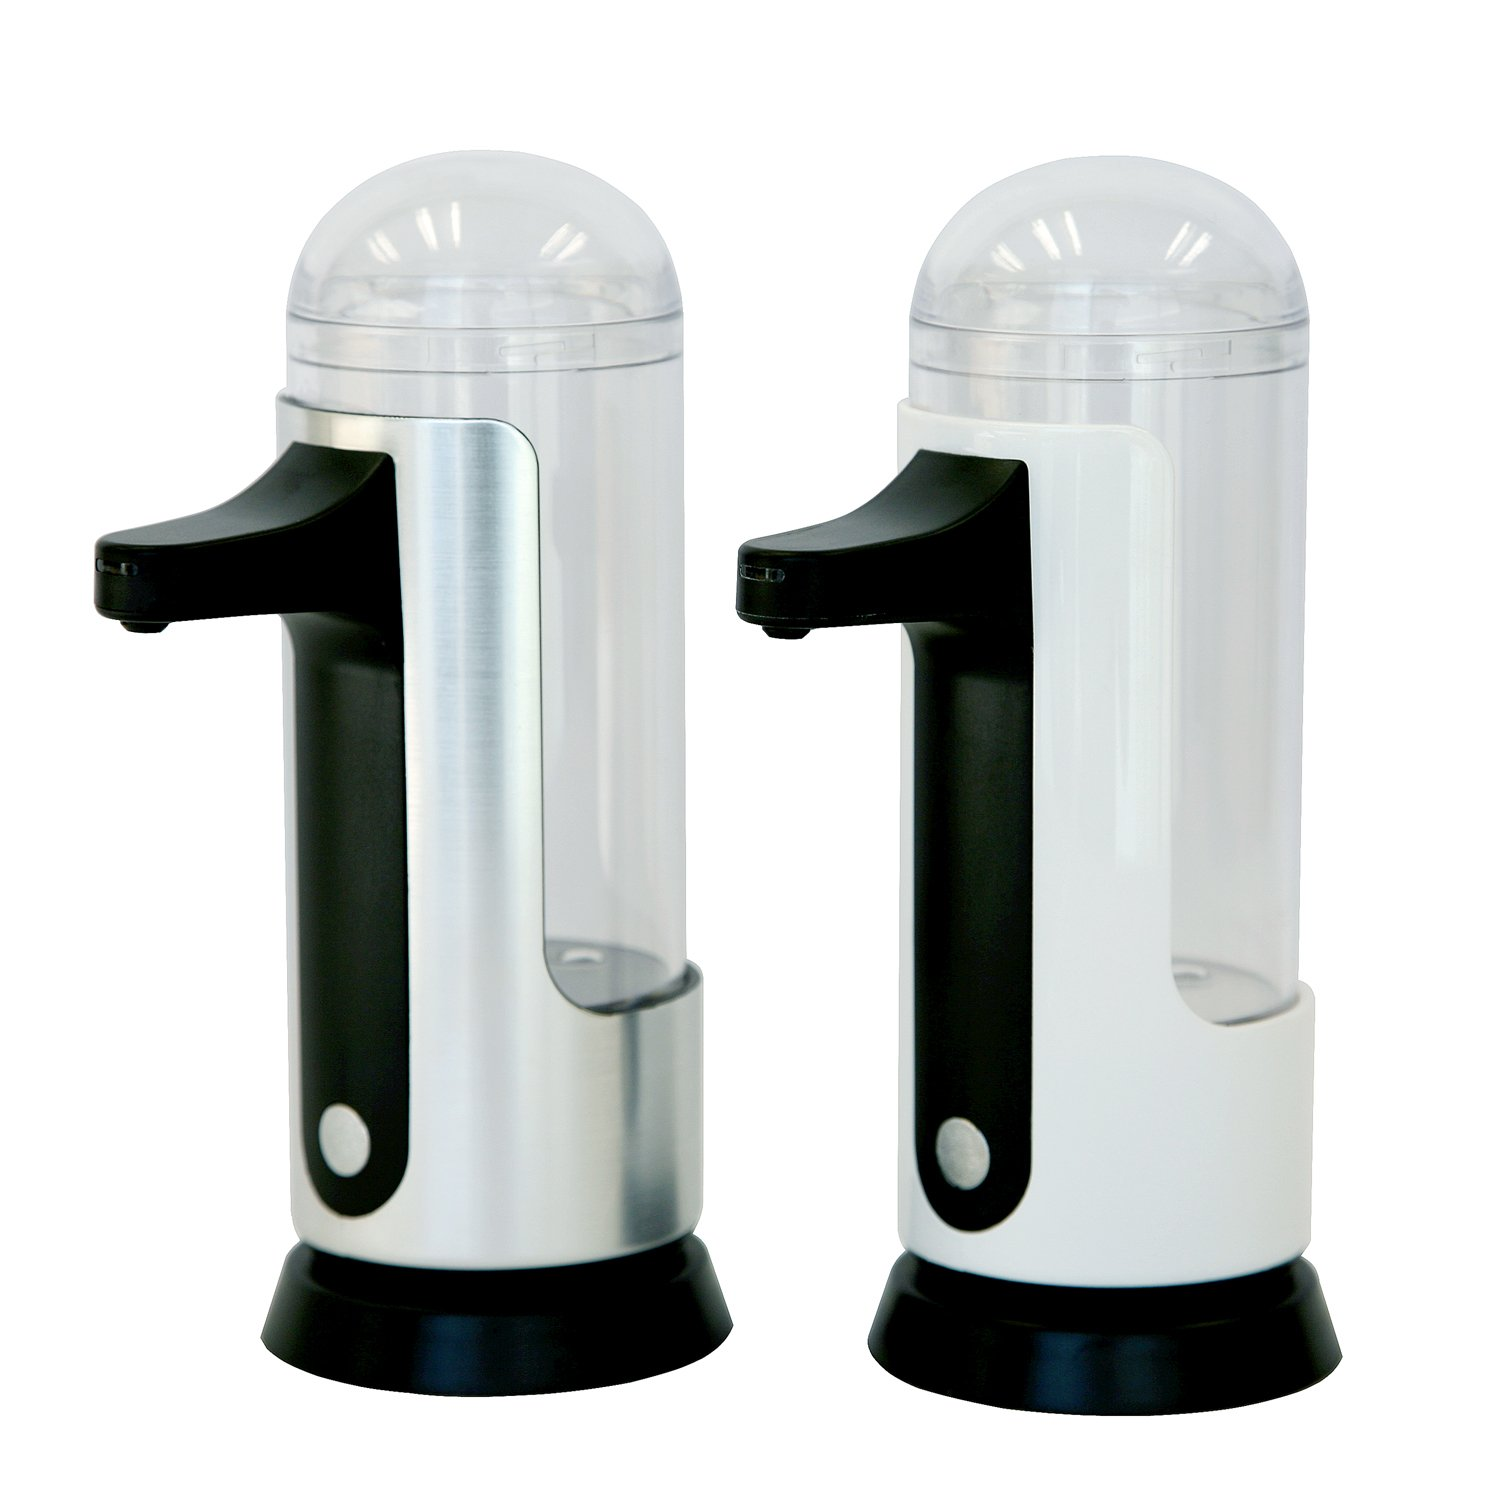 iTouchless 8oz Automatic Sensor Soap Dispenser (Value 2-unit Pack) ESD003S2